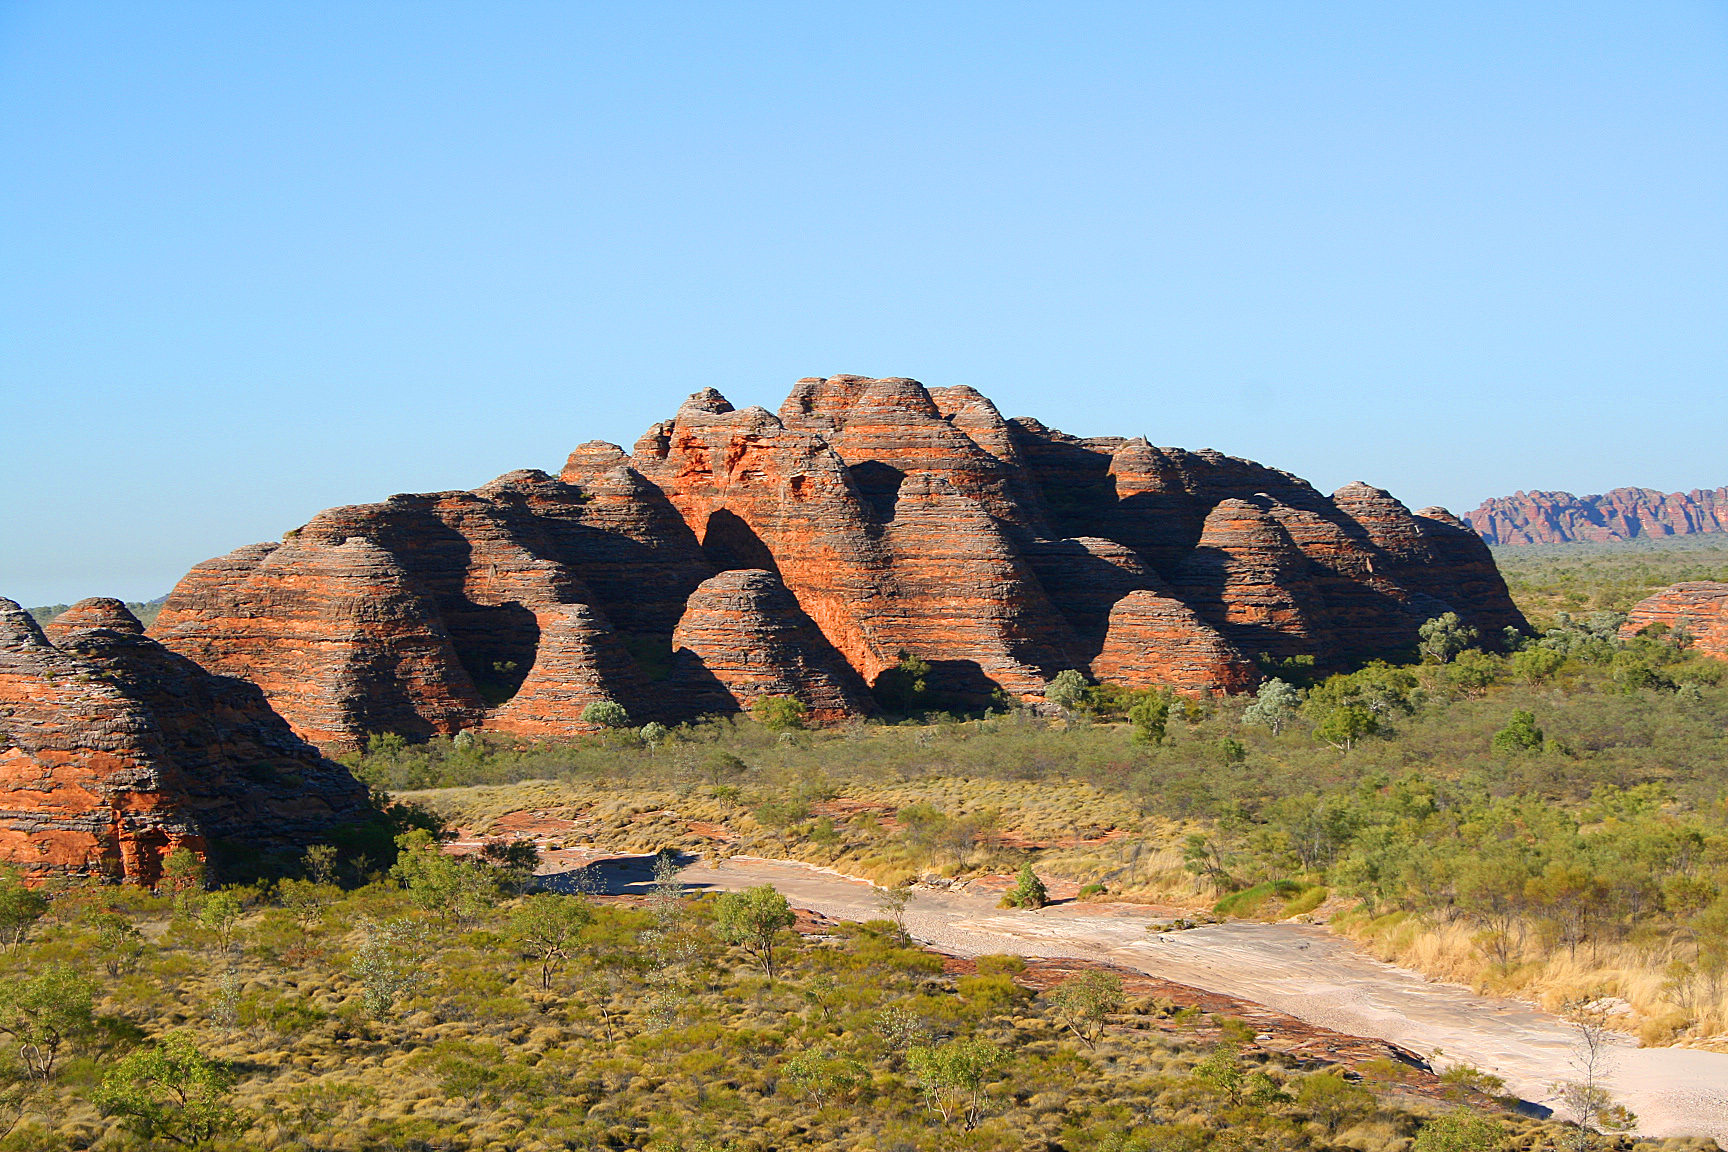 Rock formations of the Bungle Bungle Range